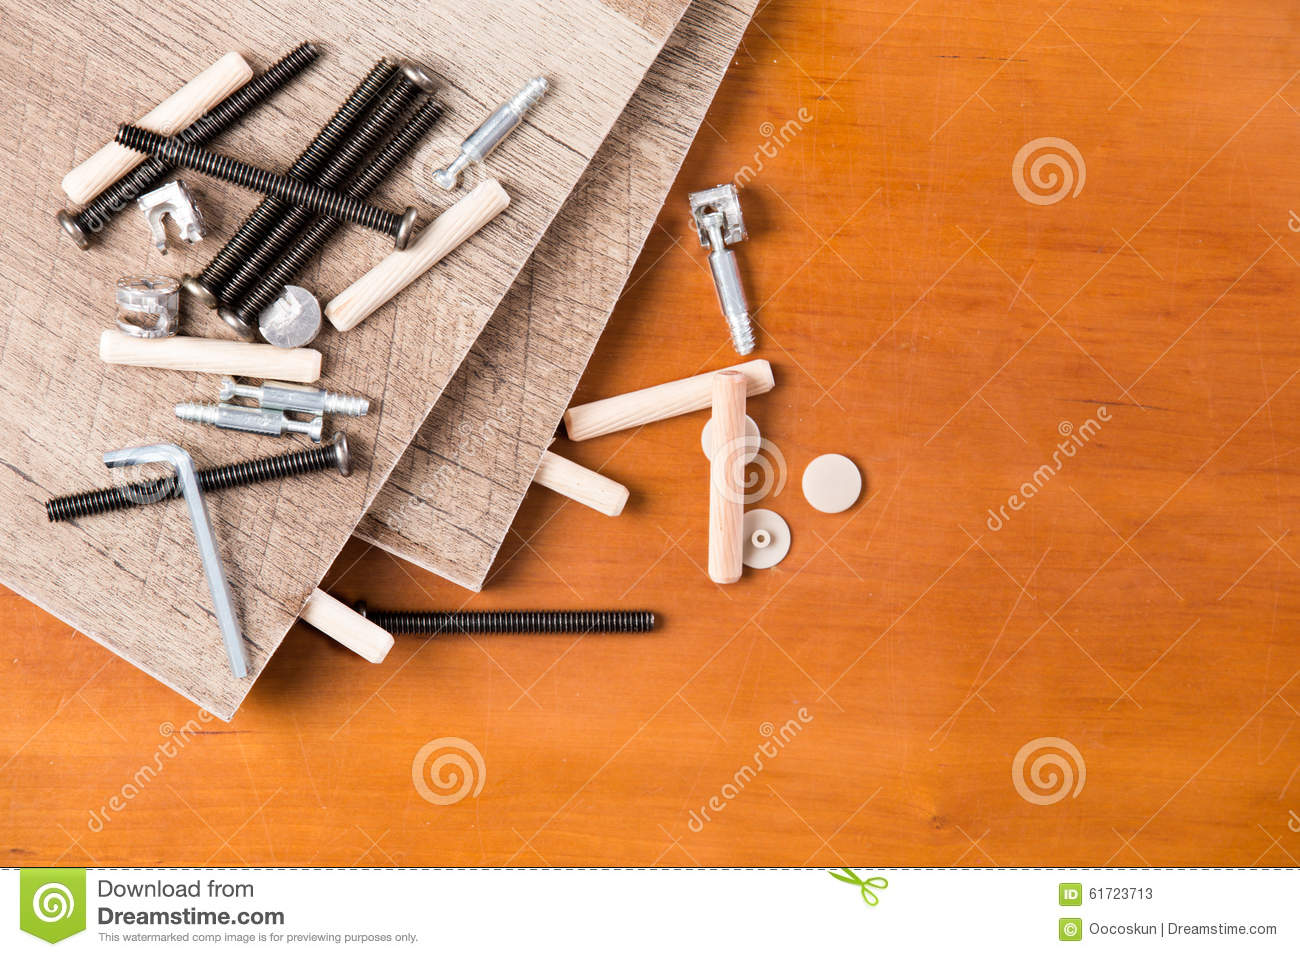 Hardware And Wood Planks For Furniture Assembly Stock